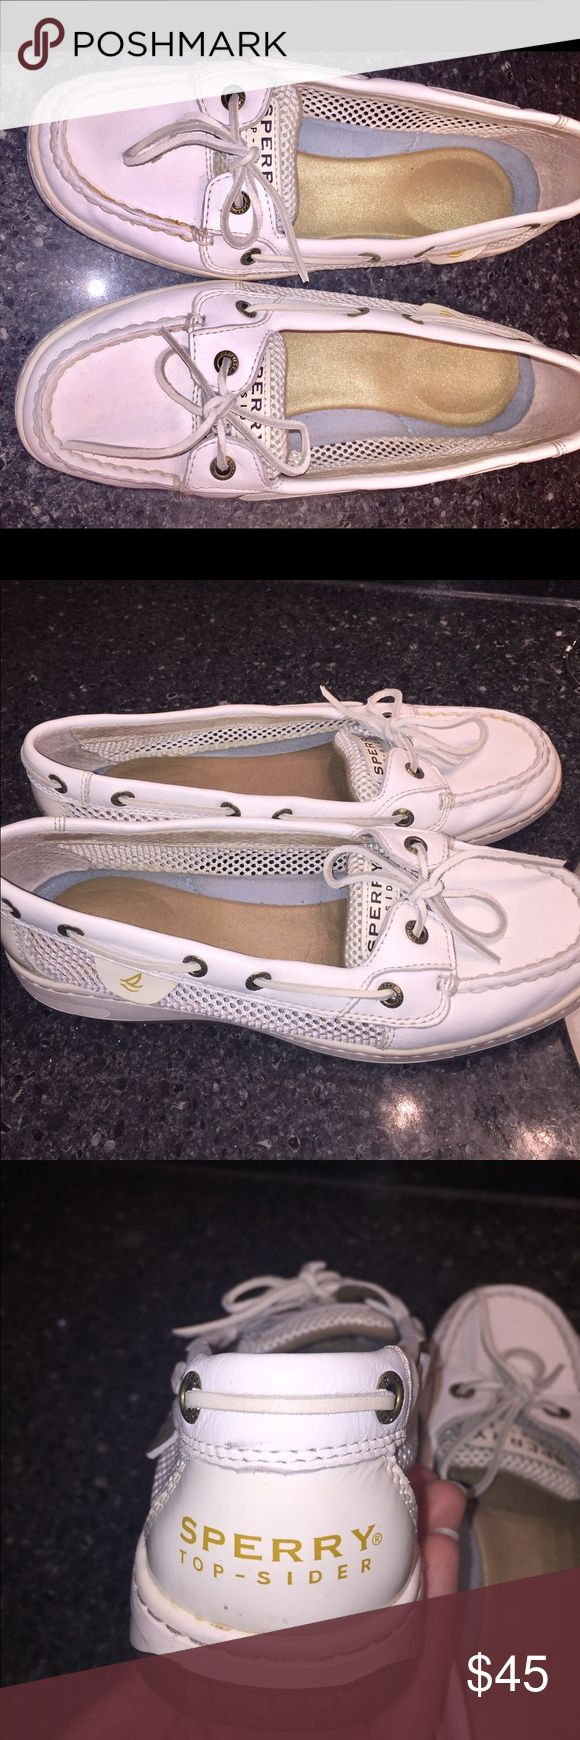 White Sperrys Hardly worn. So cute but i just grew out of them. Willing to hear offers! Sperry Top-Sider Shoes Flats & Loafers